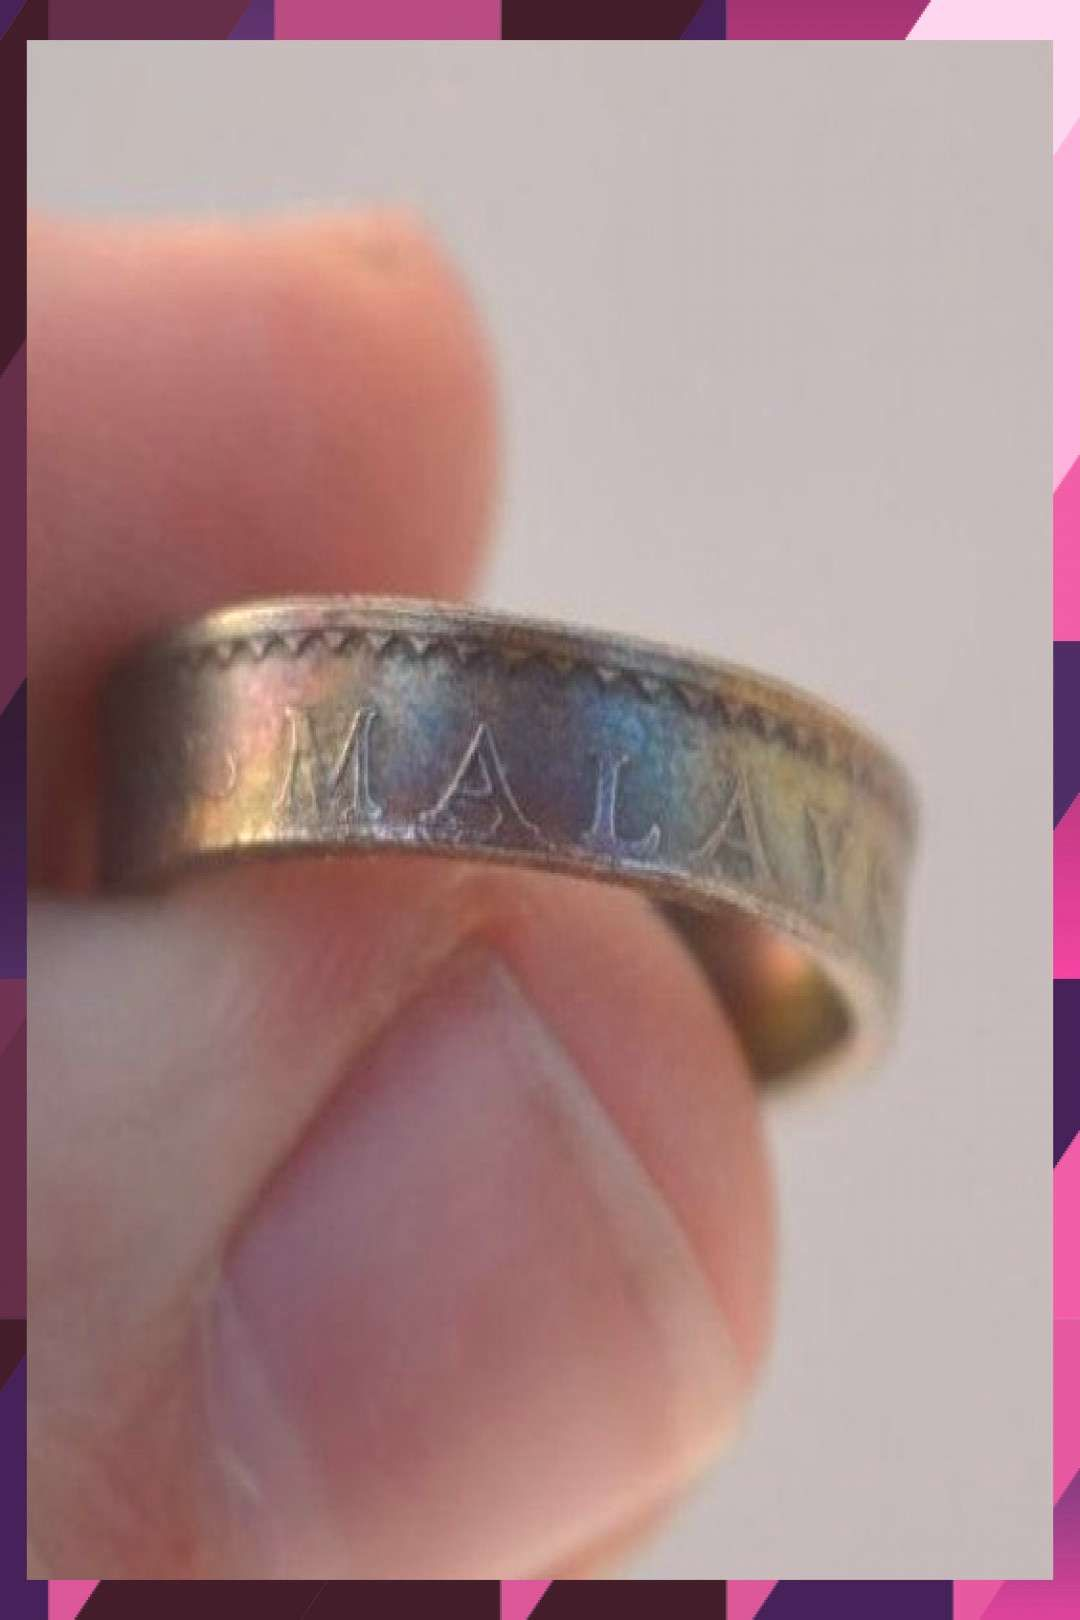 #handmade #malaysia #inches #sizeus #coin #ring #made #sen #716 #10 #of #if #a #9 #2 handmade ring made of a 10 Sen (Malaysia) coin size(US): 9 ;(inches): 2 7/16 (if...You can find Malaysia and mo...